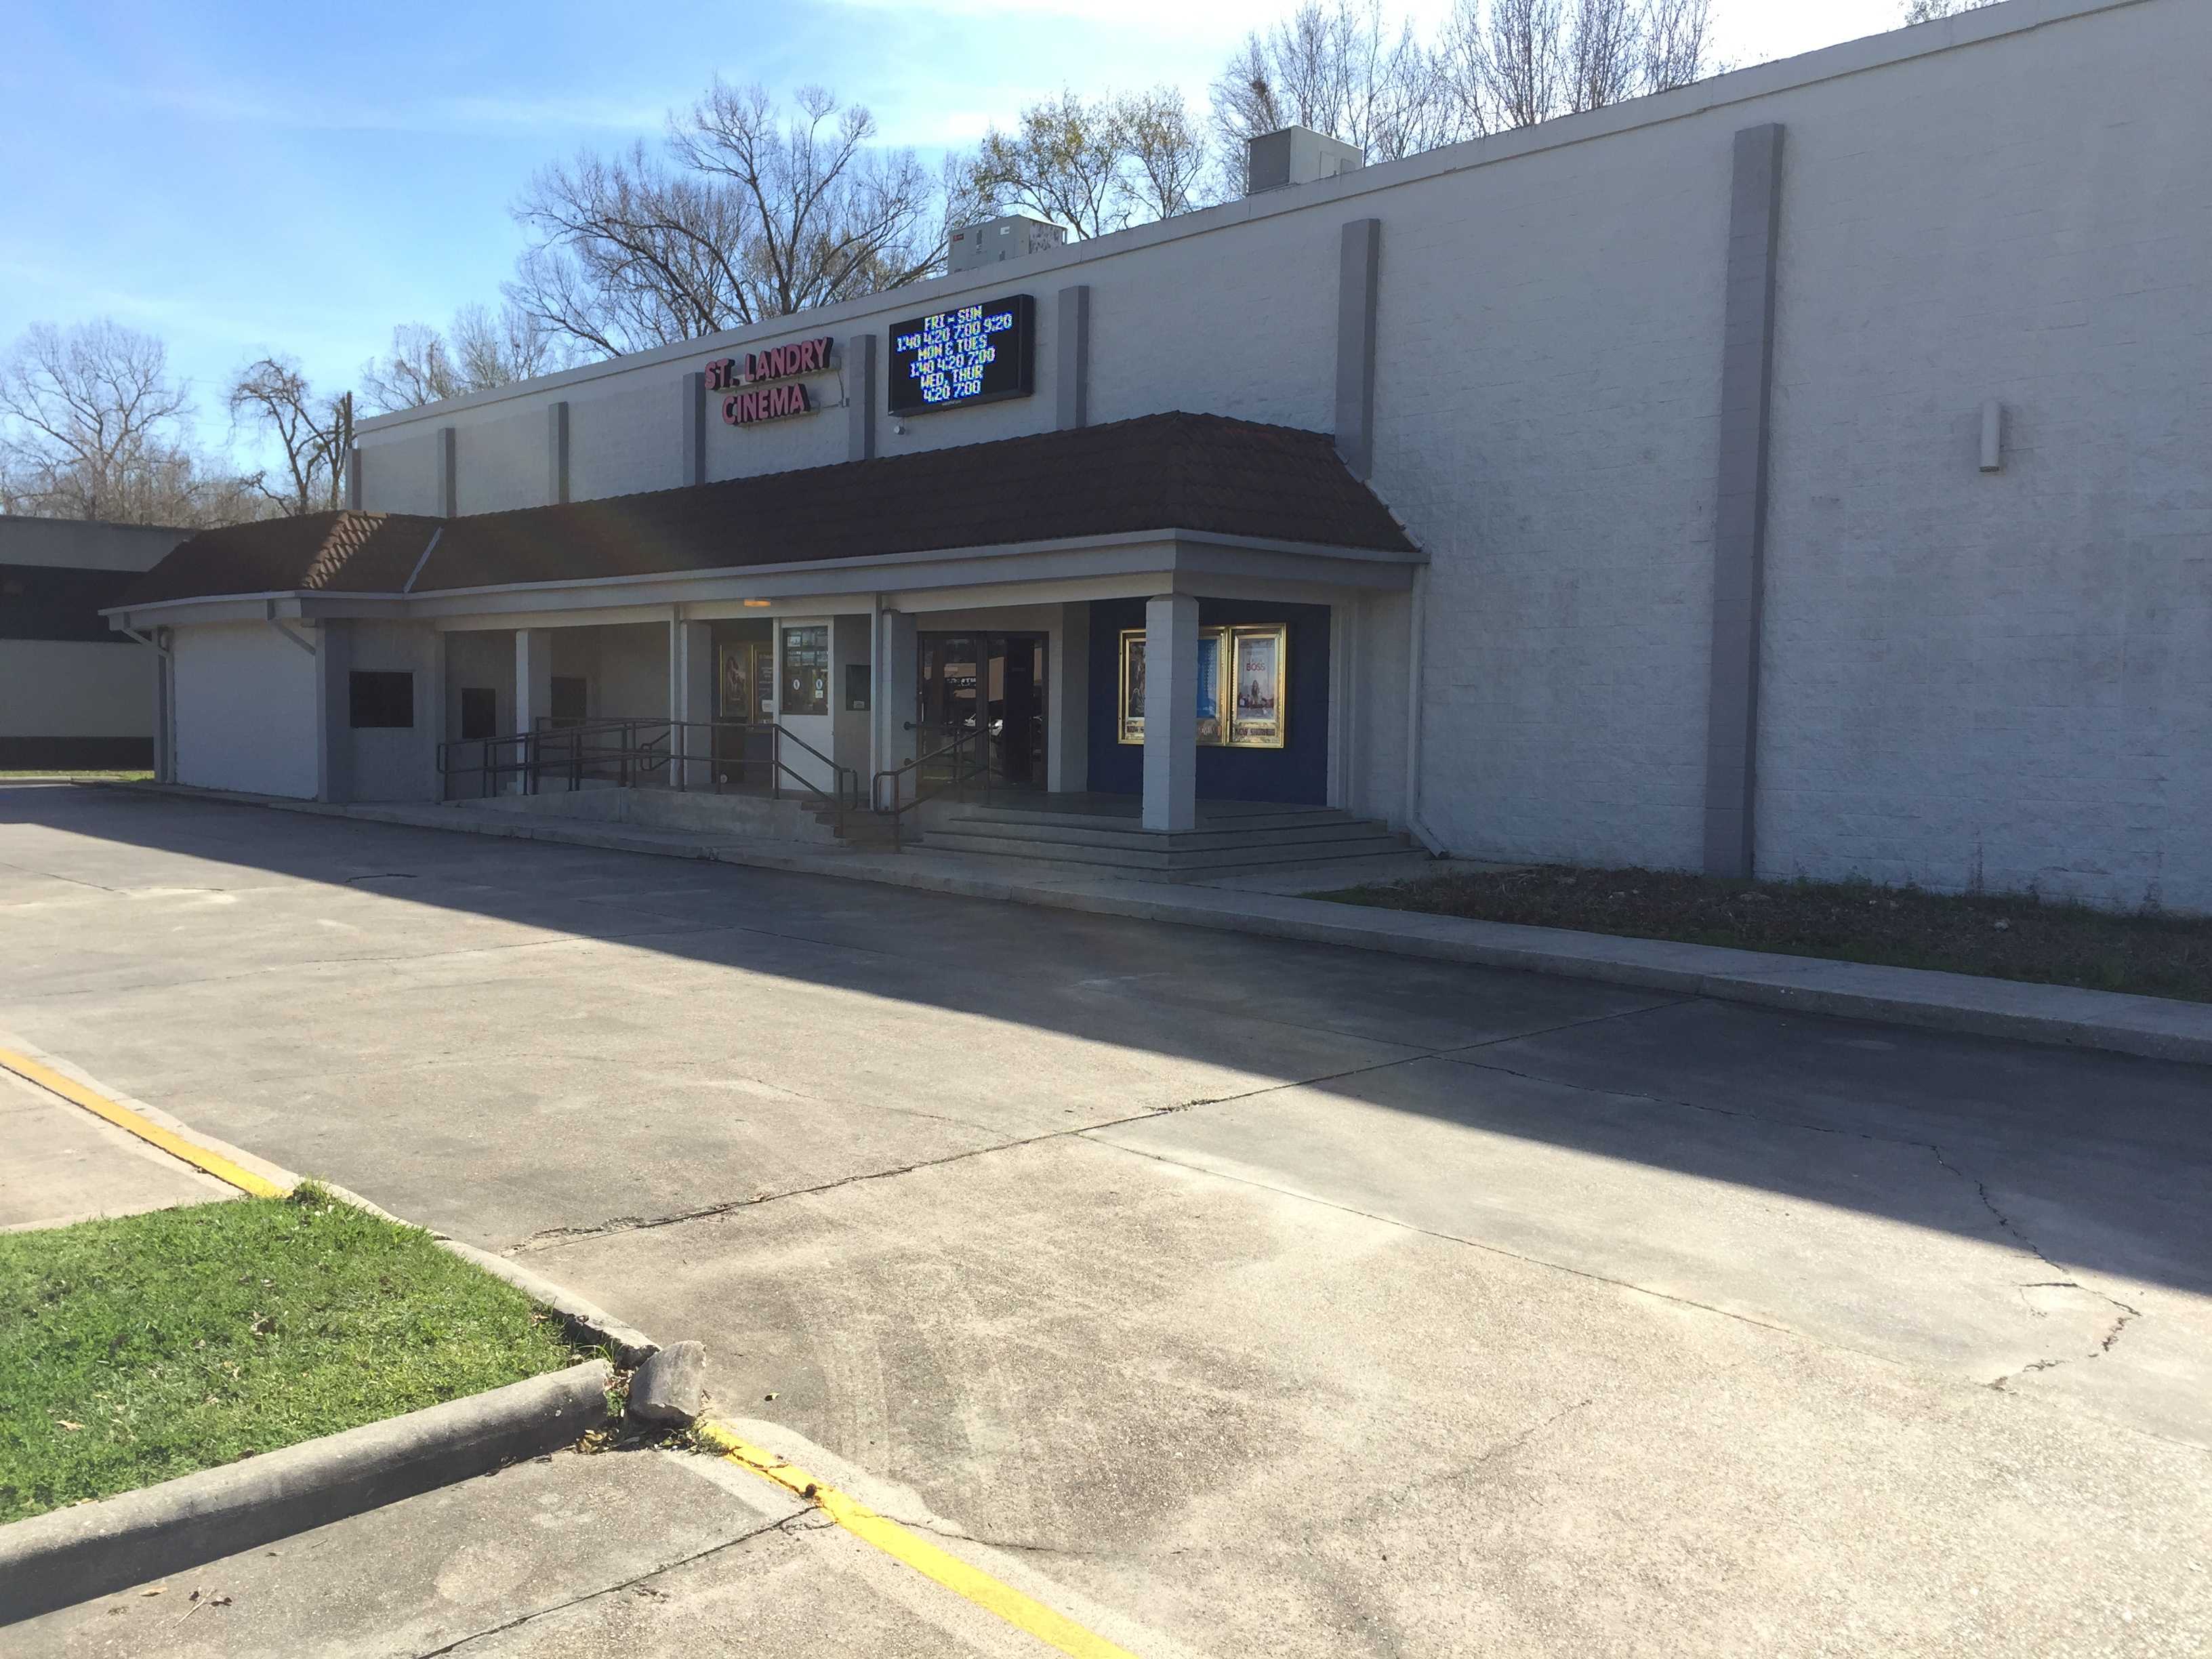 Image of Opelousas, LA - St. Landry Cinema 4